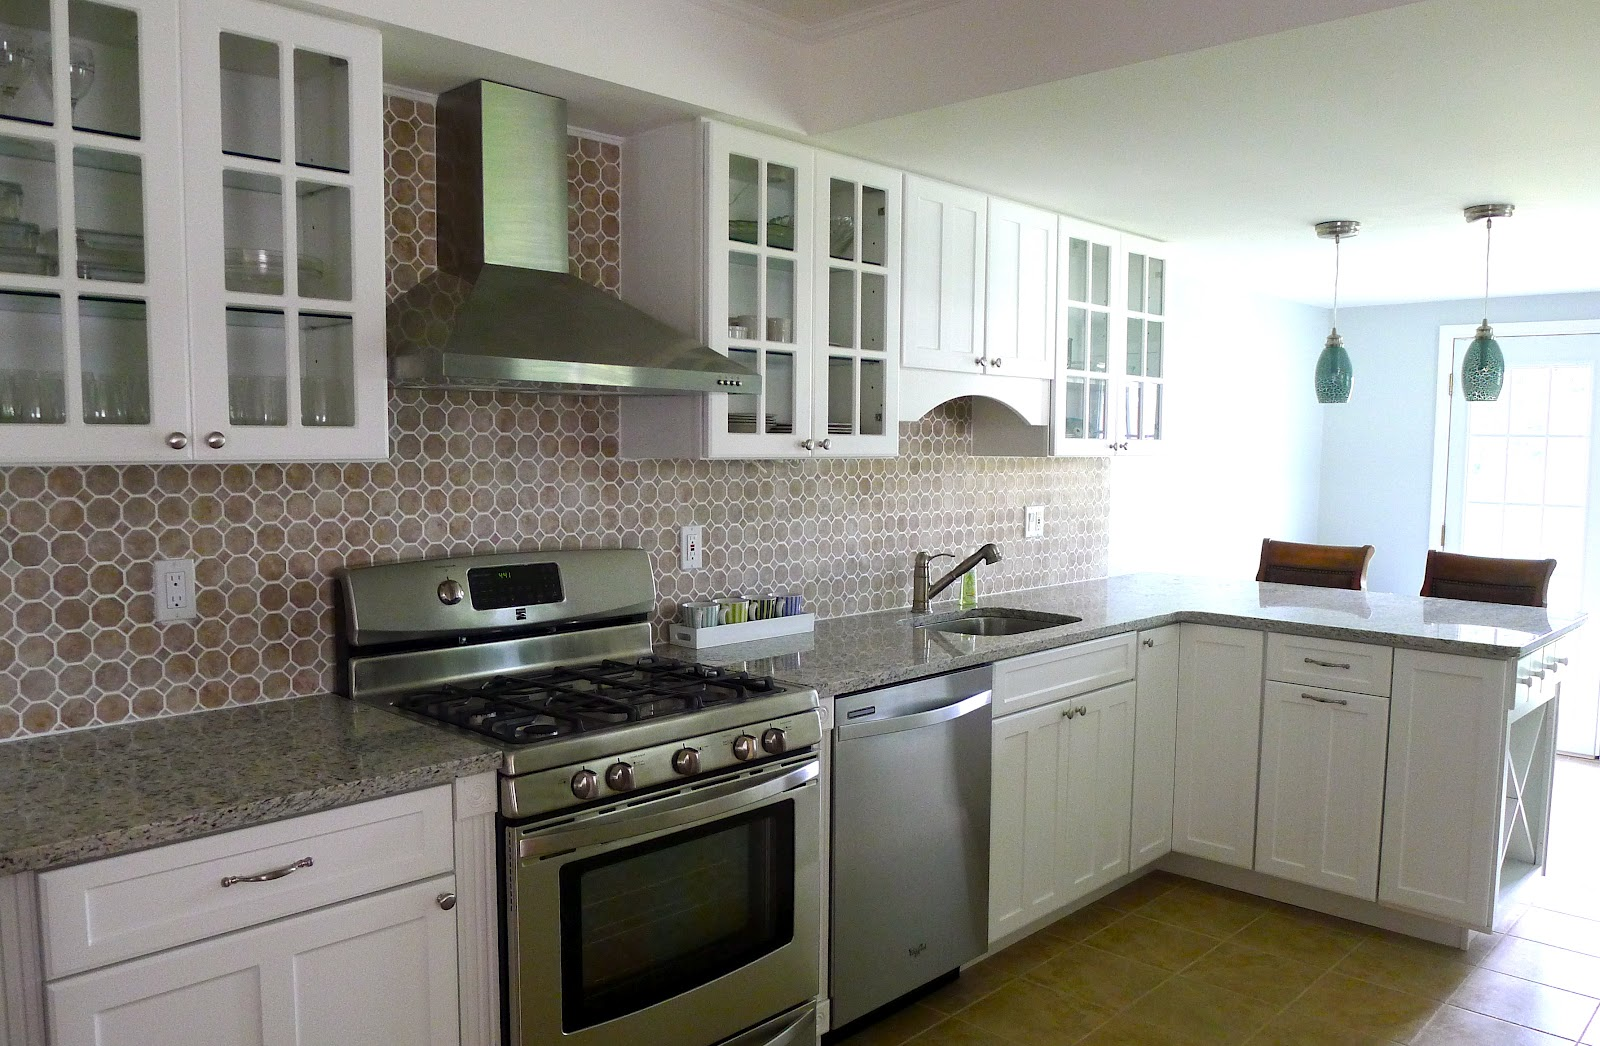 Home sweet abode kitchen makeover before and after - Kitchen makeovers before and after photos ...